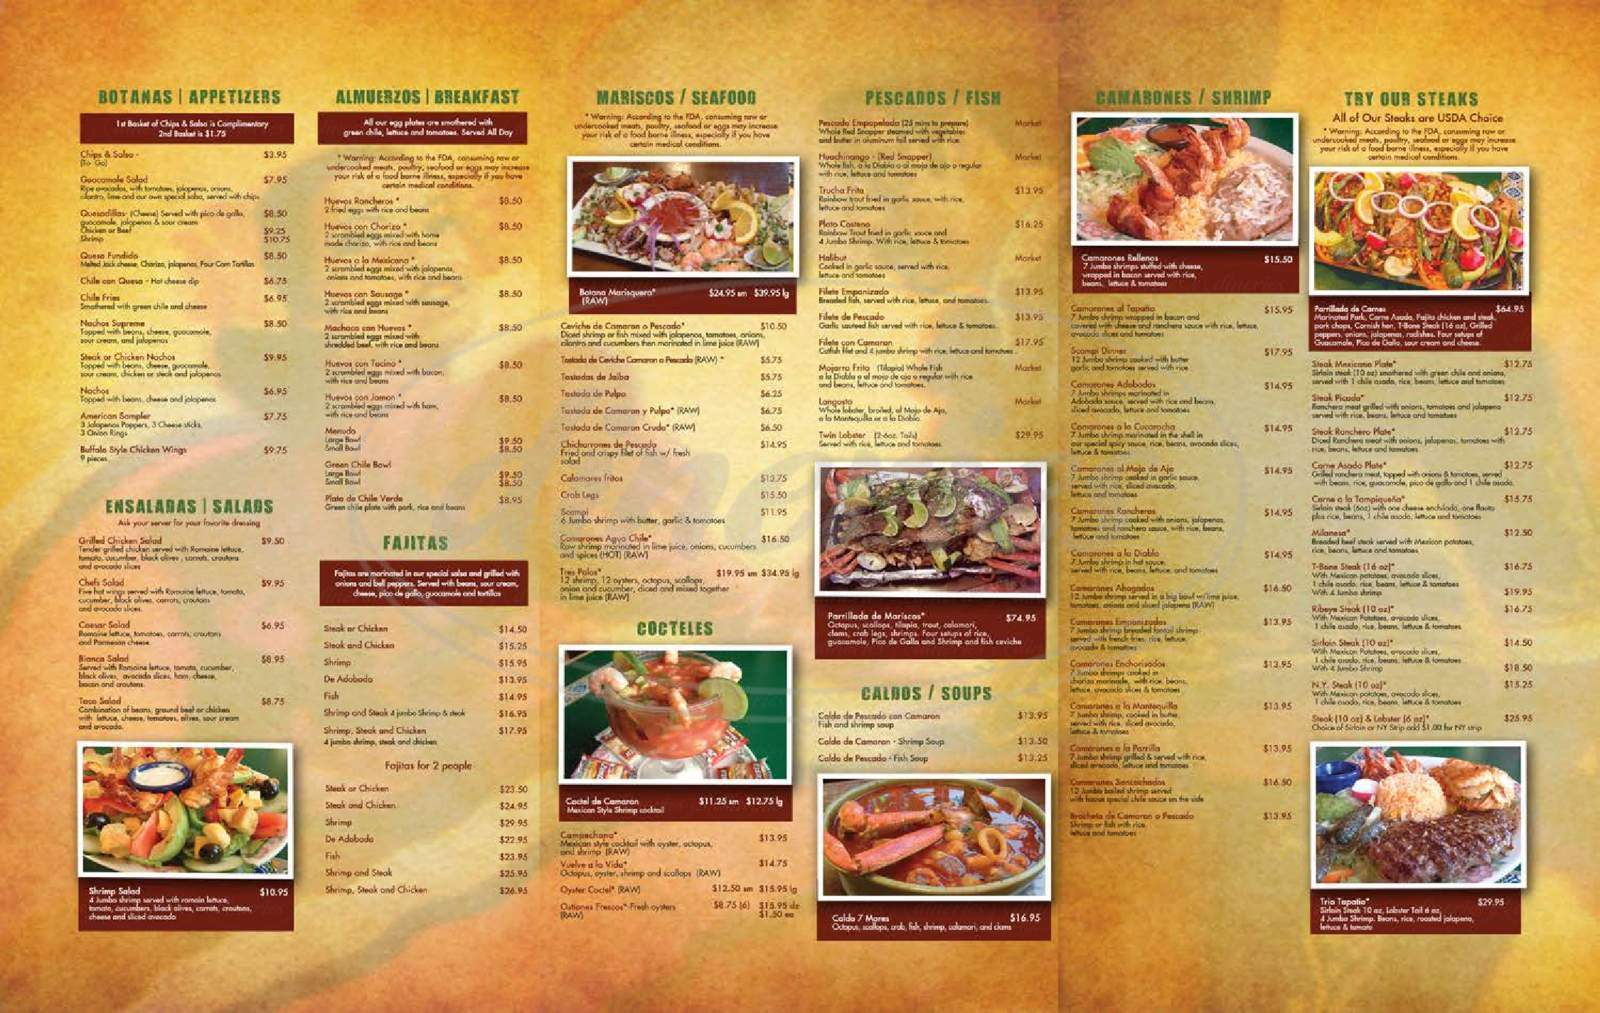 menu for El Tapatio